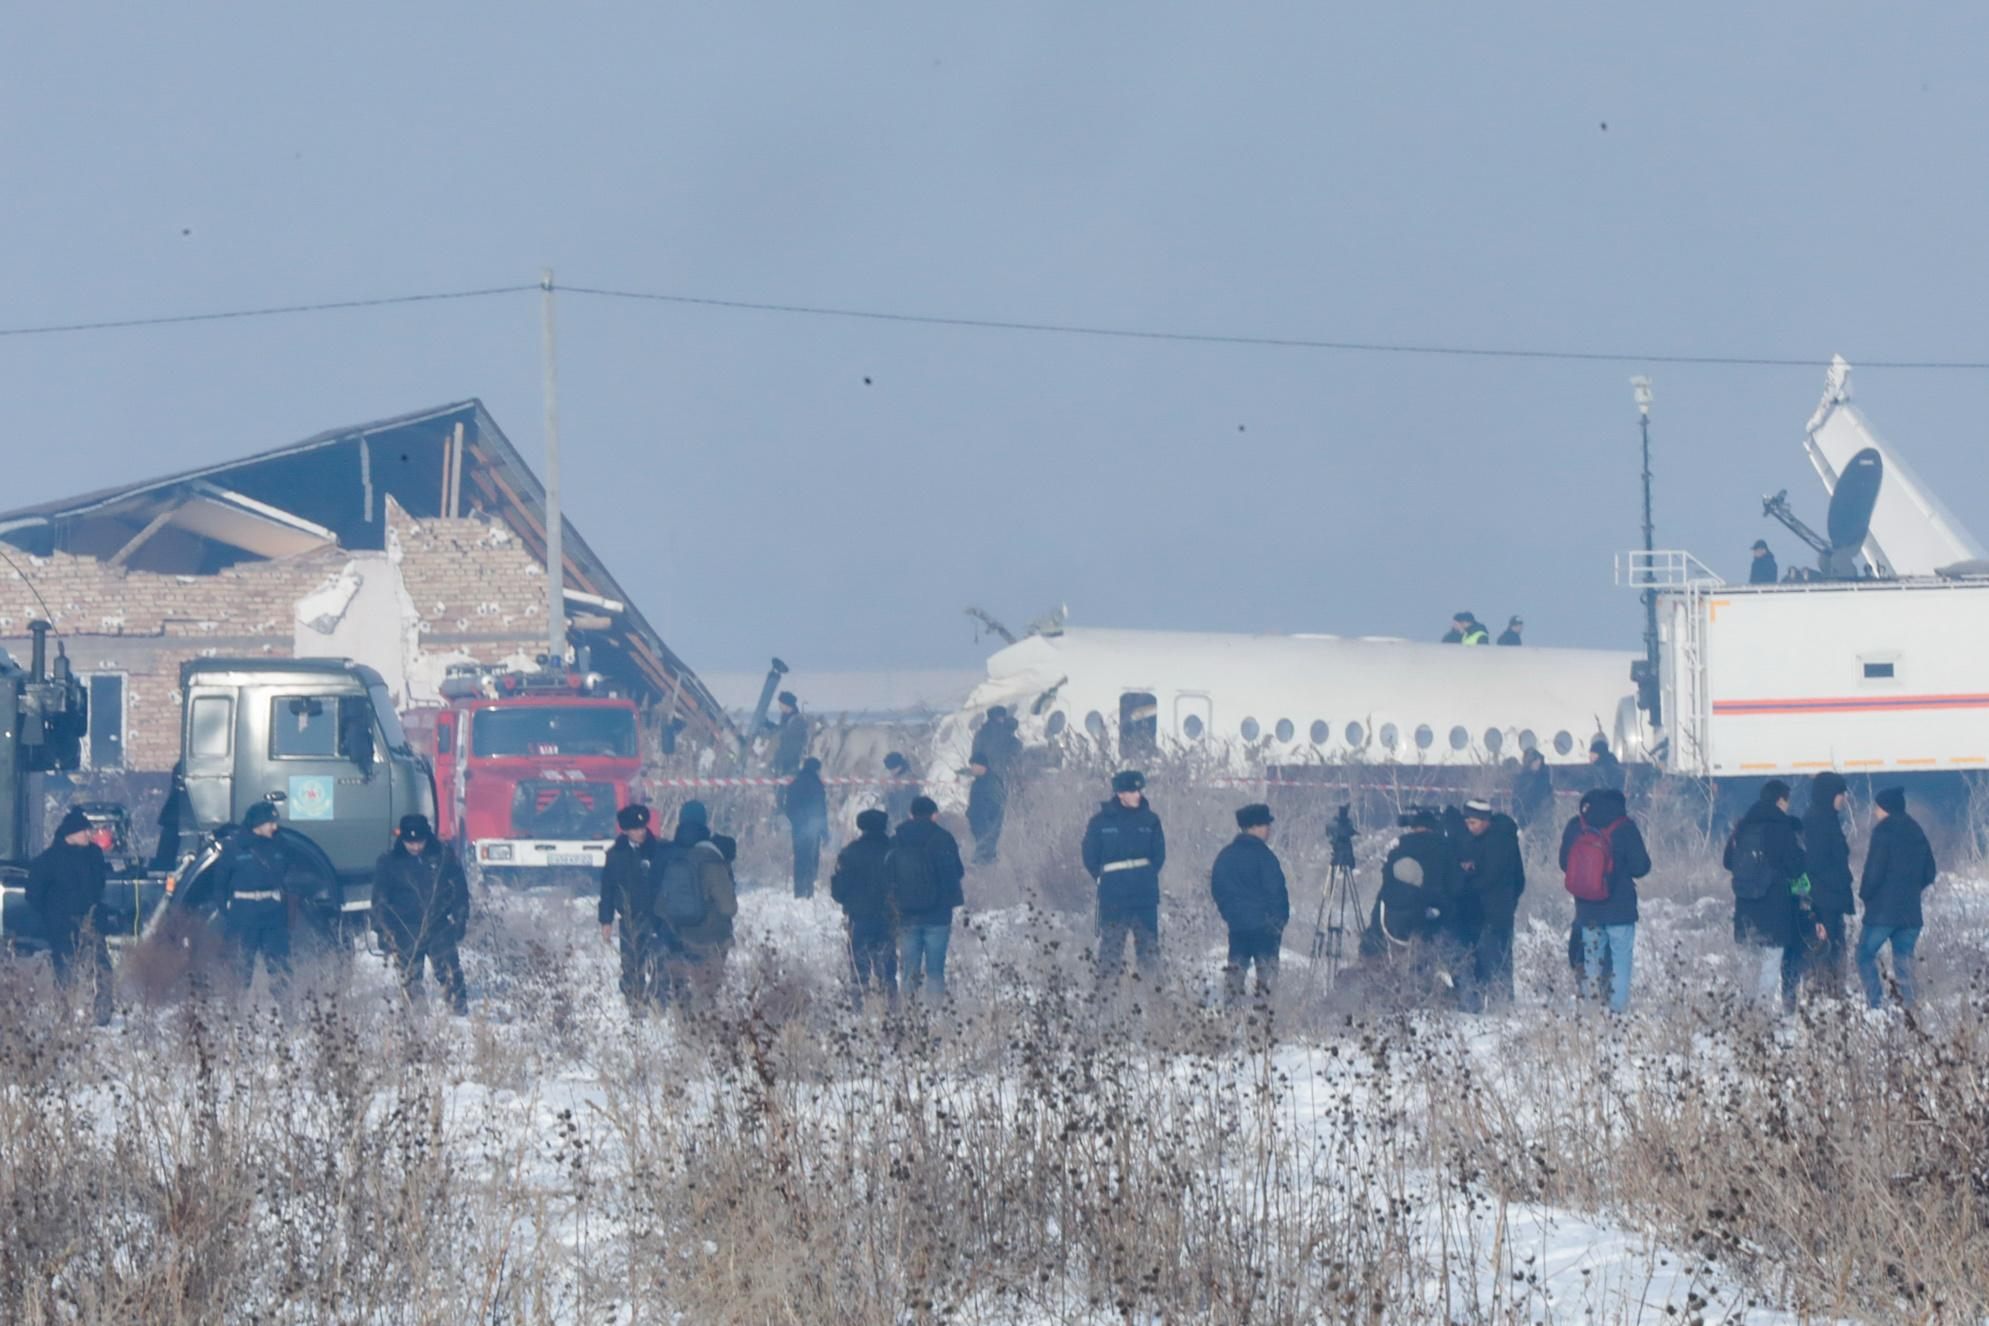 ALMATY, KAZAKHSTAN - DECEMBER 27, 2019: The site of a crash of a Bek Air plane carrying 95 passengers and 5 crew members near Almaty Airport. A Bek Air Fokker 100 passenger plane flying from Almaty to Nur-Sultan has crashed minutes after takeoff, broken through a concrete guardrail and clashed into a two-storey building. The accident has killed at least 14 people, dozens have been injured. Pavel Aleksandrov/TASS (Photo by Pavel Aleksandrov\TASS via Getty Images)